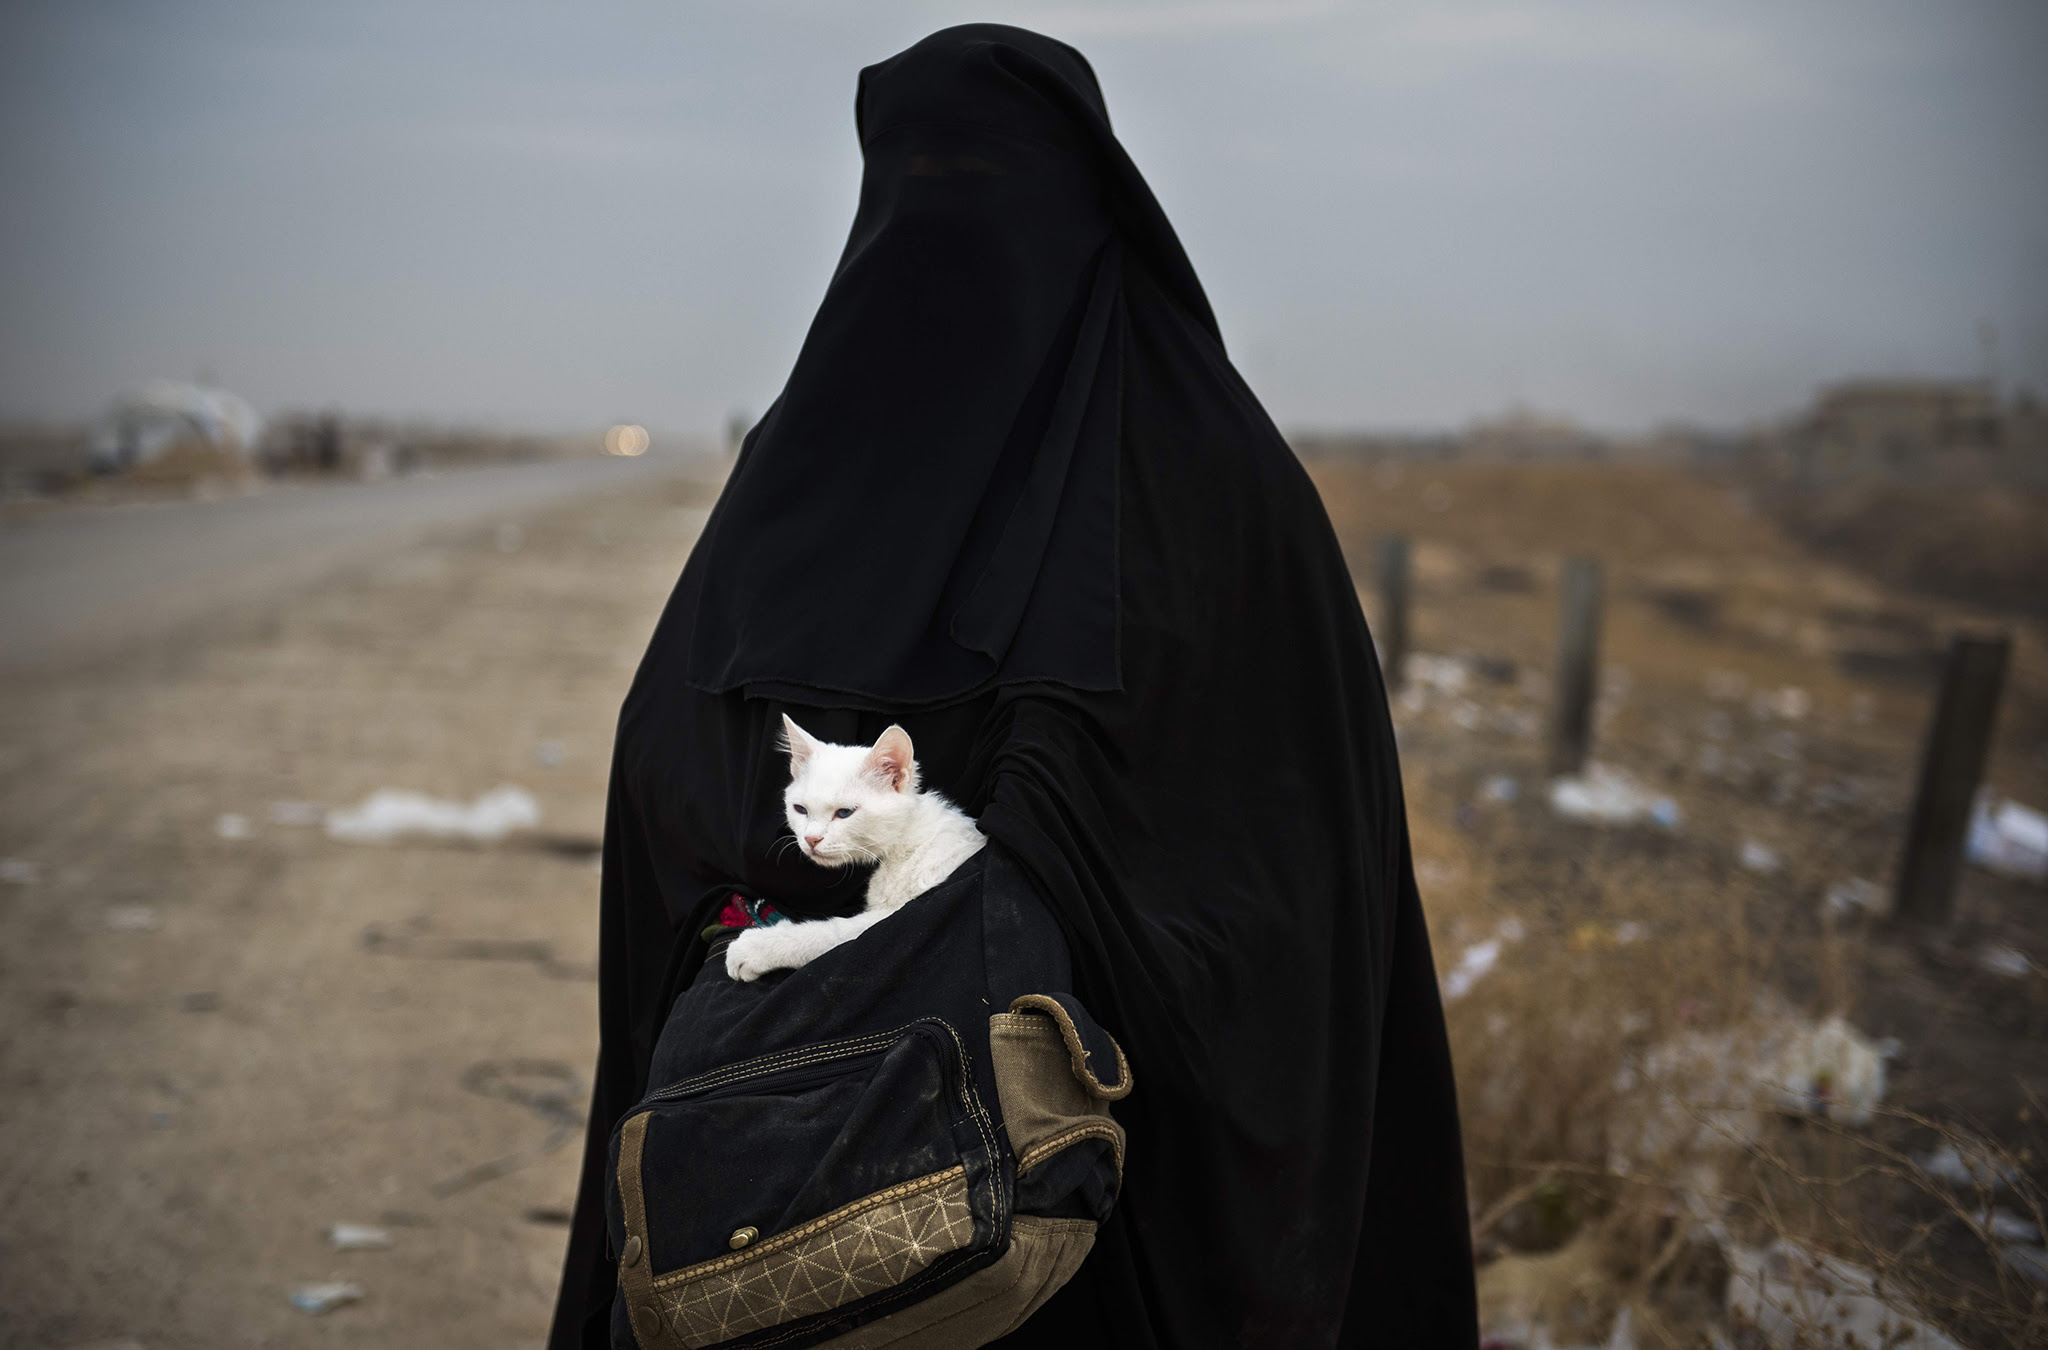 A displaced Iraqi woman holds her cat, Lulu, as she waits for transport in the Iraqi Kurdish checkpoint village of Shaqouli, about 35 kilometres east of Mosul, on November 10, 2016, after she fled her home with her children in the eastern Intisar neighbourhood of the embattled city to take refuge at a camp in Arbil.  Iraqi forces are taking part in an operation to recapture Iraq's second city Mosul from Islamic State (IS) group jihadists. / AFP PHOTO / Odd ANDERSENODD ANDERSEN/AFP/Getty Images